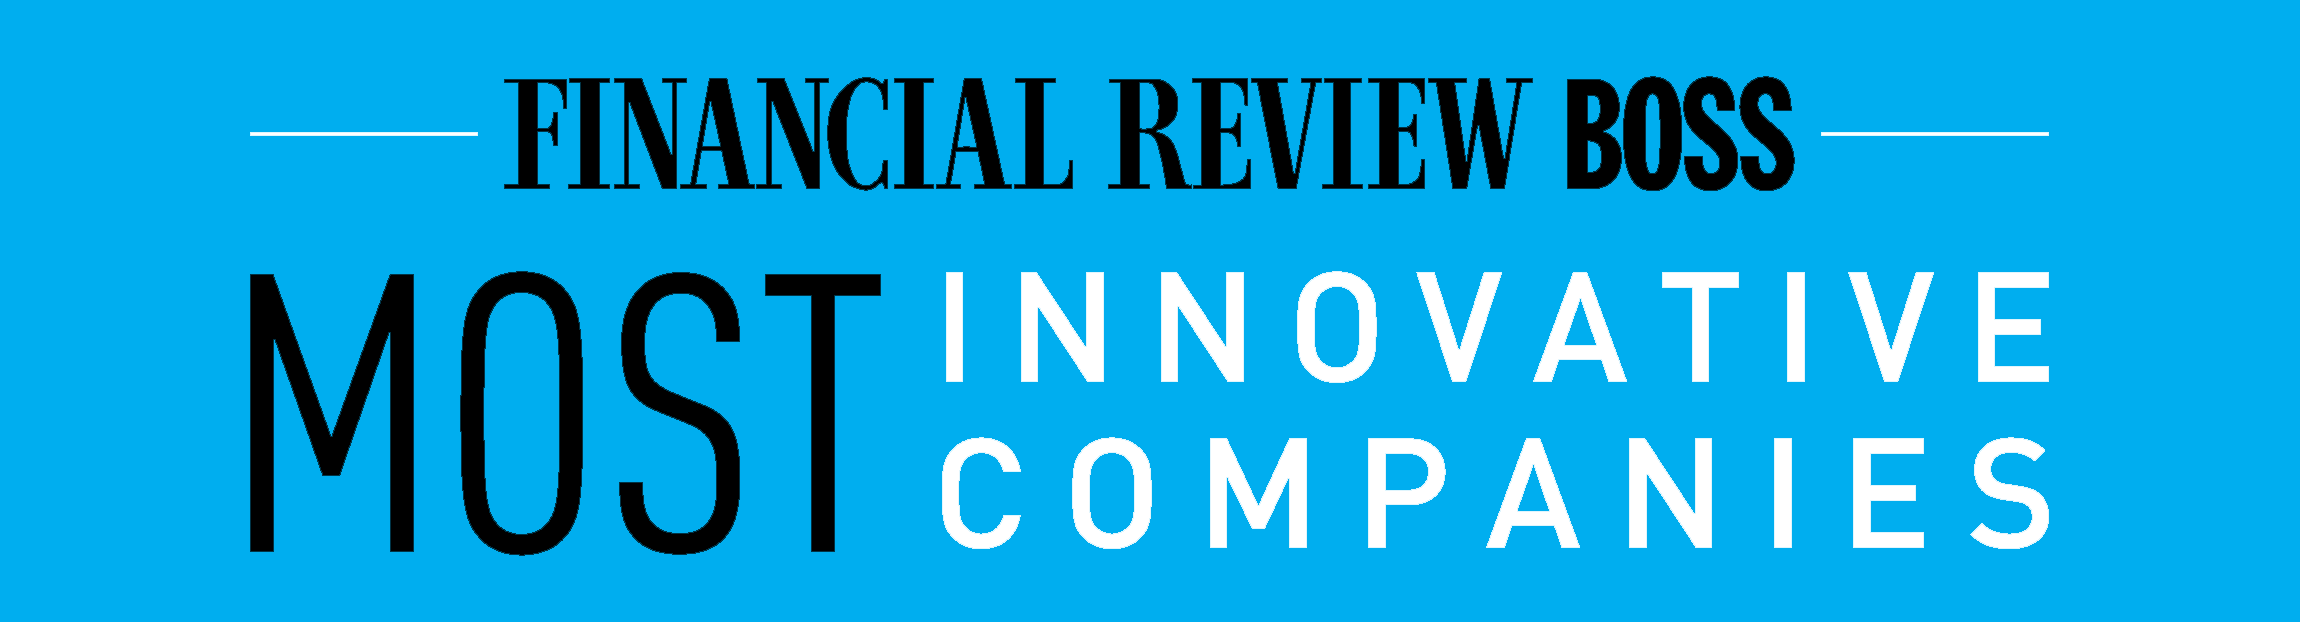 AFR103_2019 Most Innovative Companies Logo-Blue Cyan